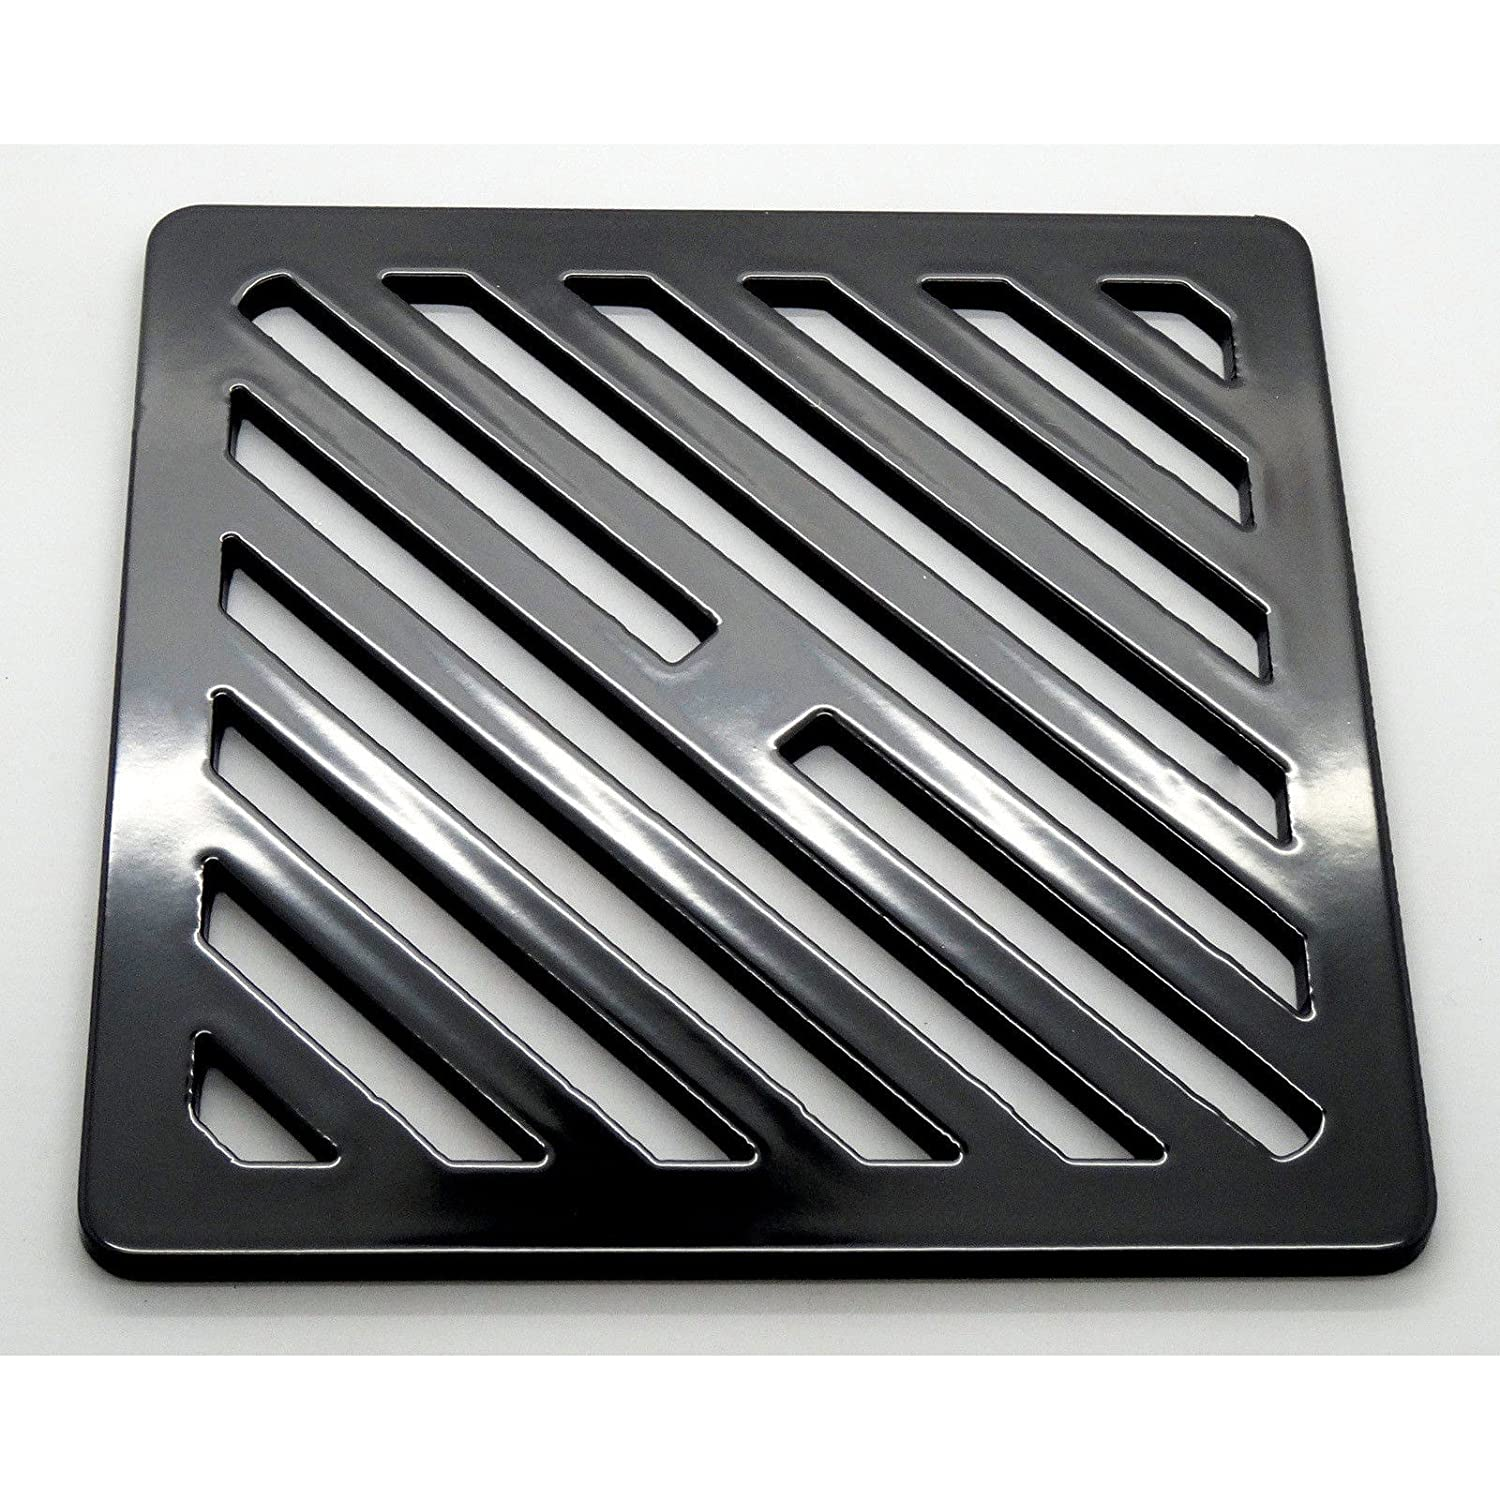 9.5 inch Square Solid Metal Steel Gully Grid Heavy Duty Drain Cover Grate Like cast Iron Stronger